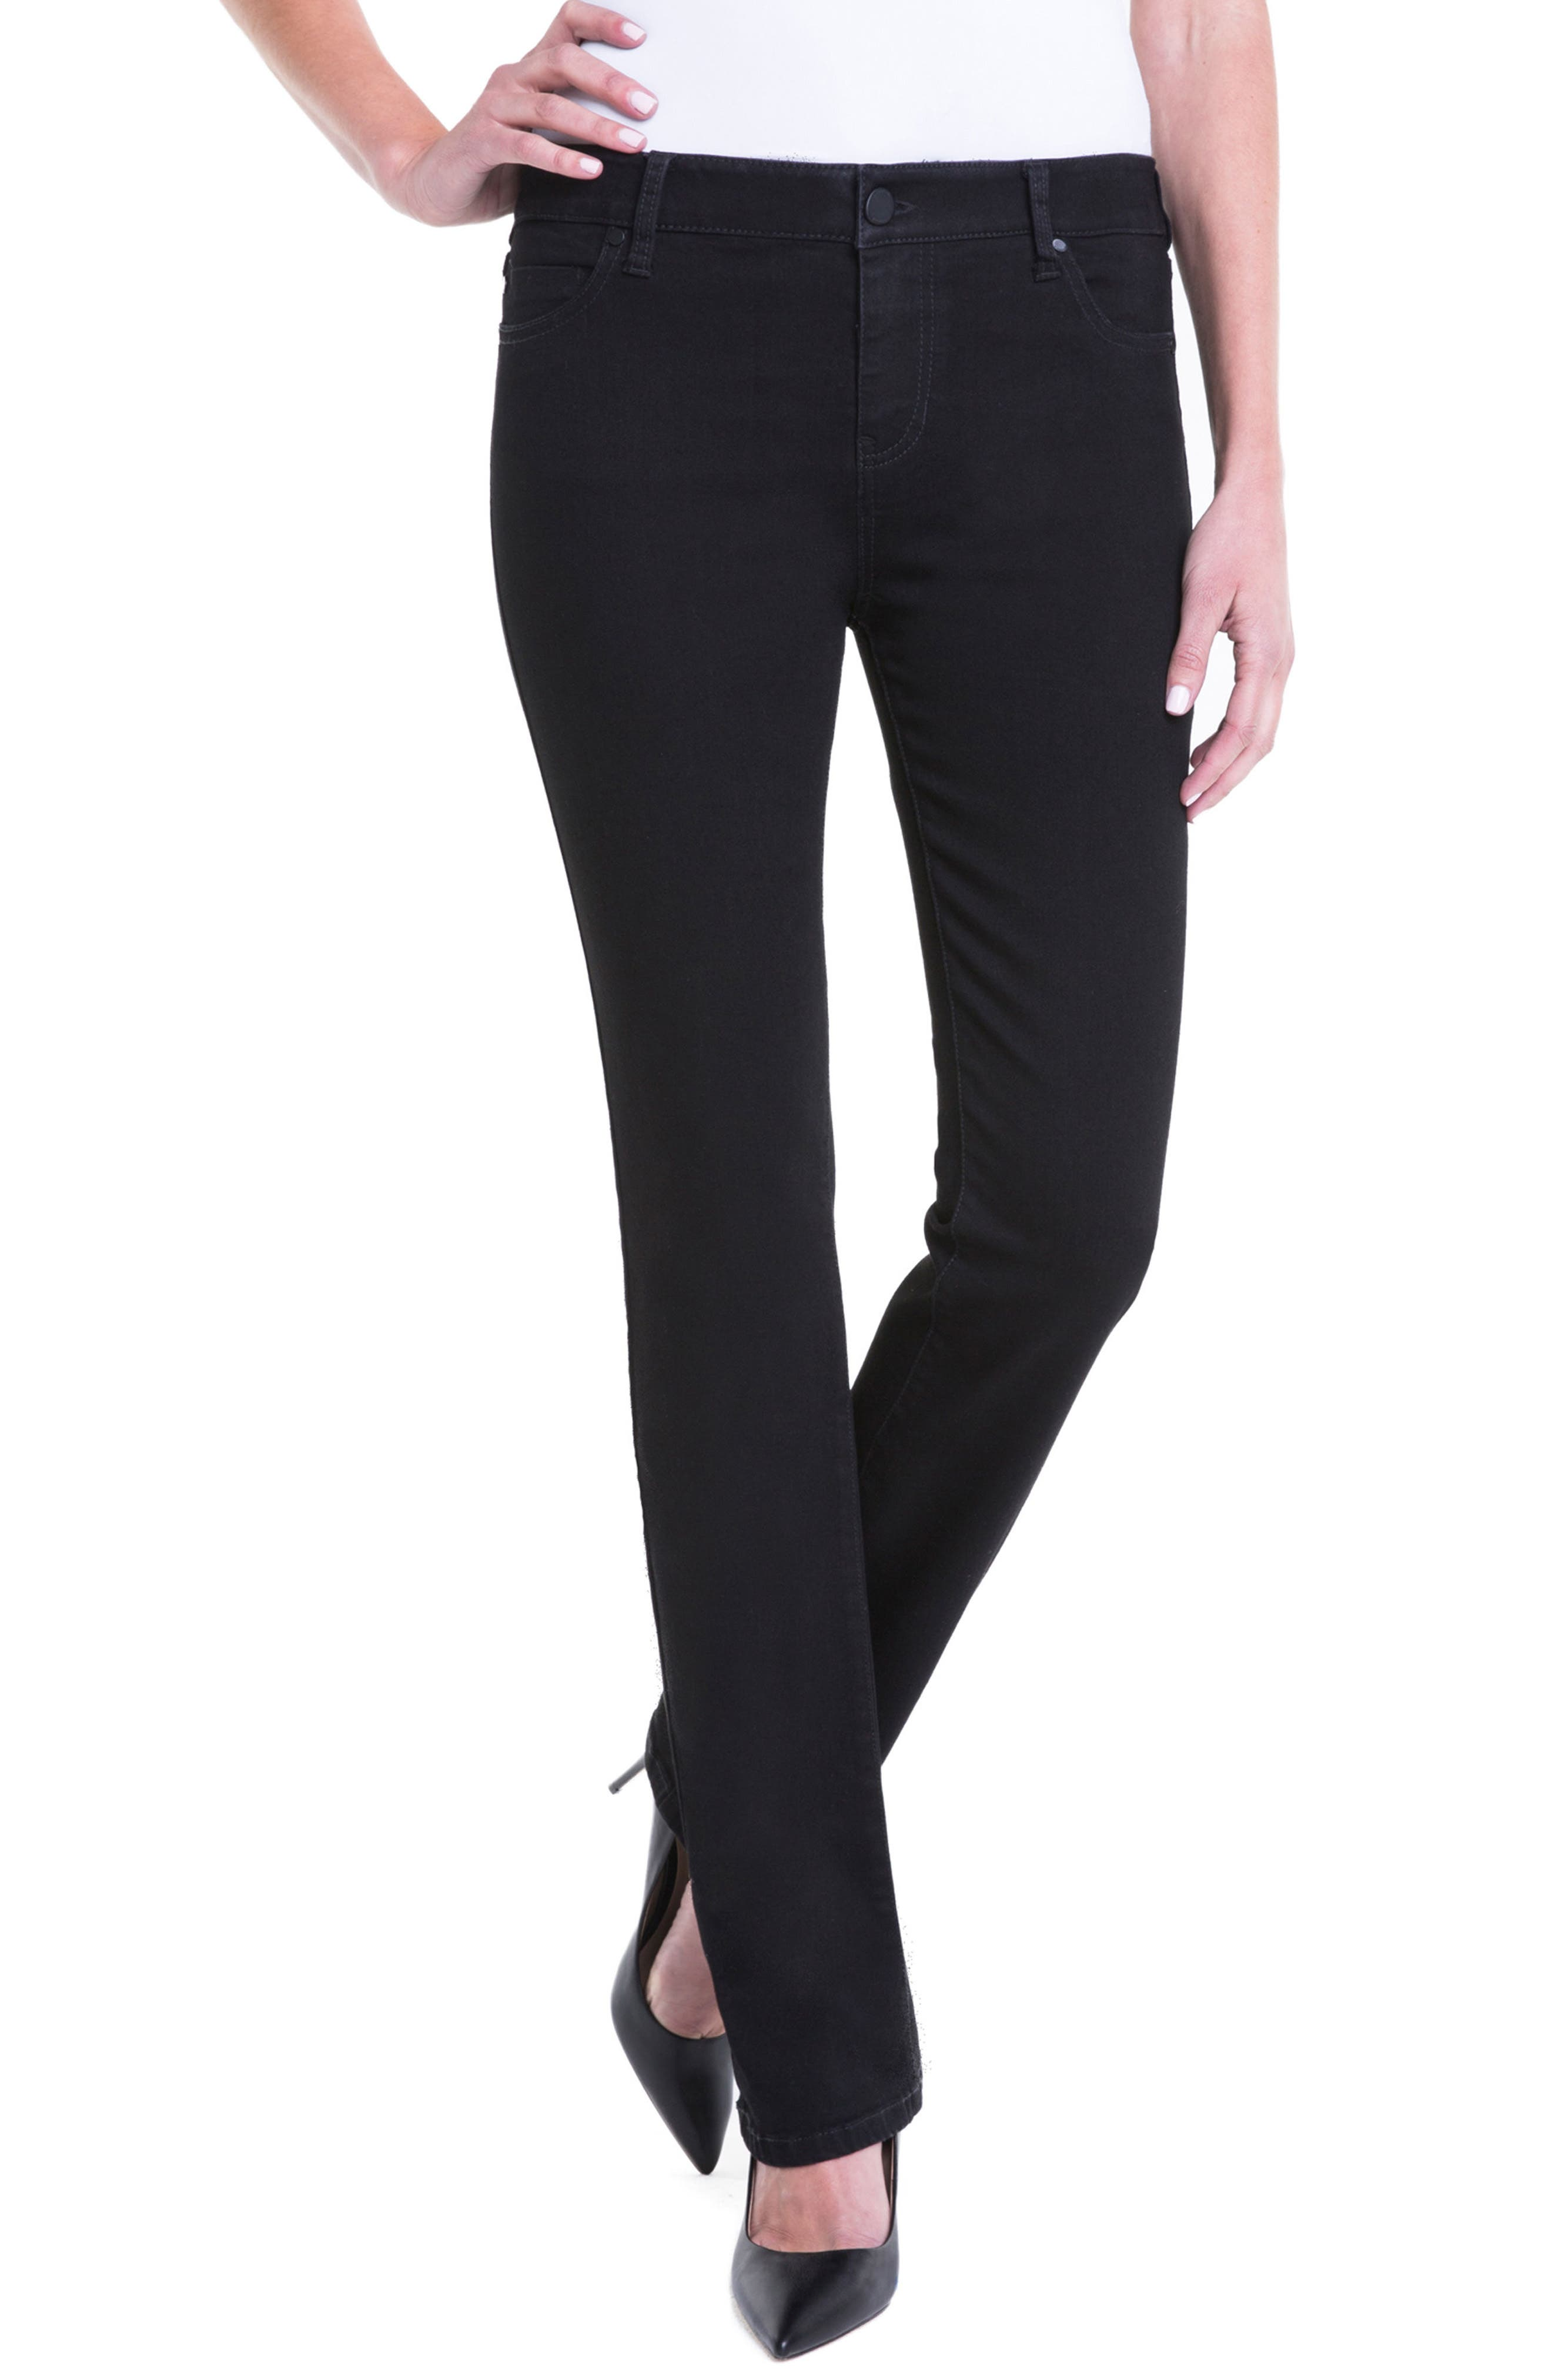 Women's Liverpool Jeans Company Sadie Mid Rise Stretch Straight Jeans